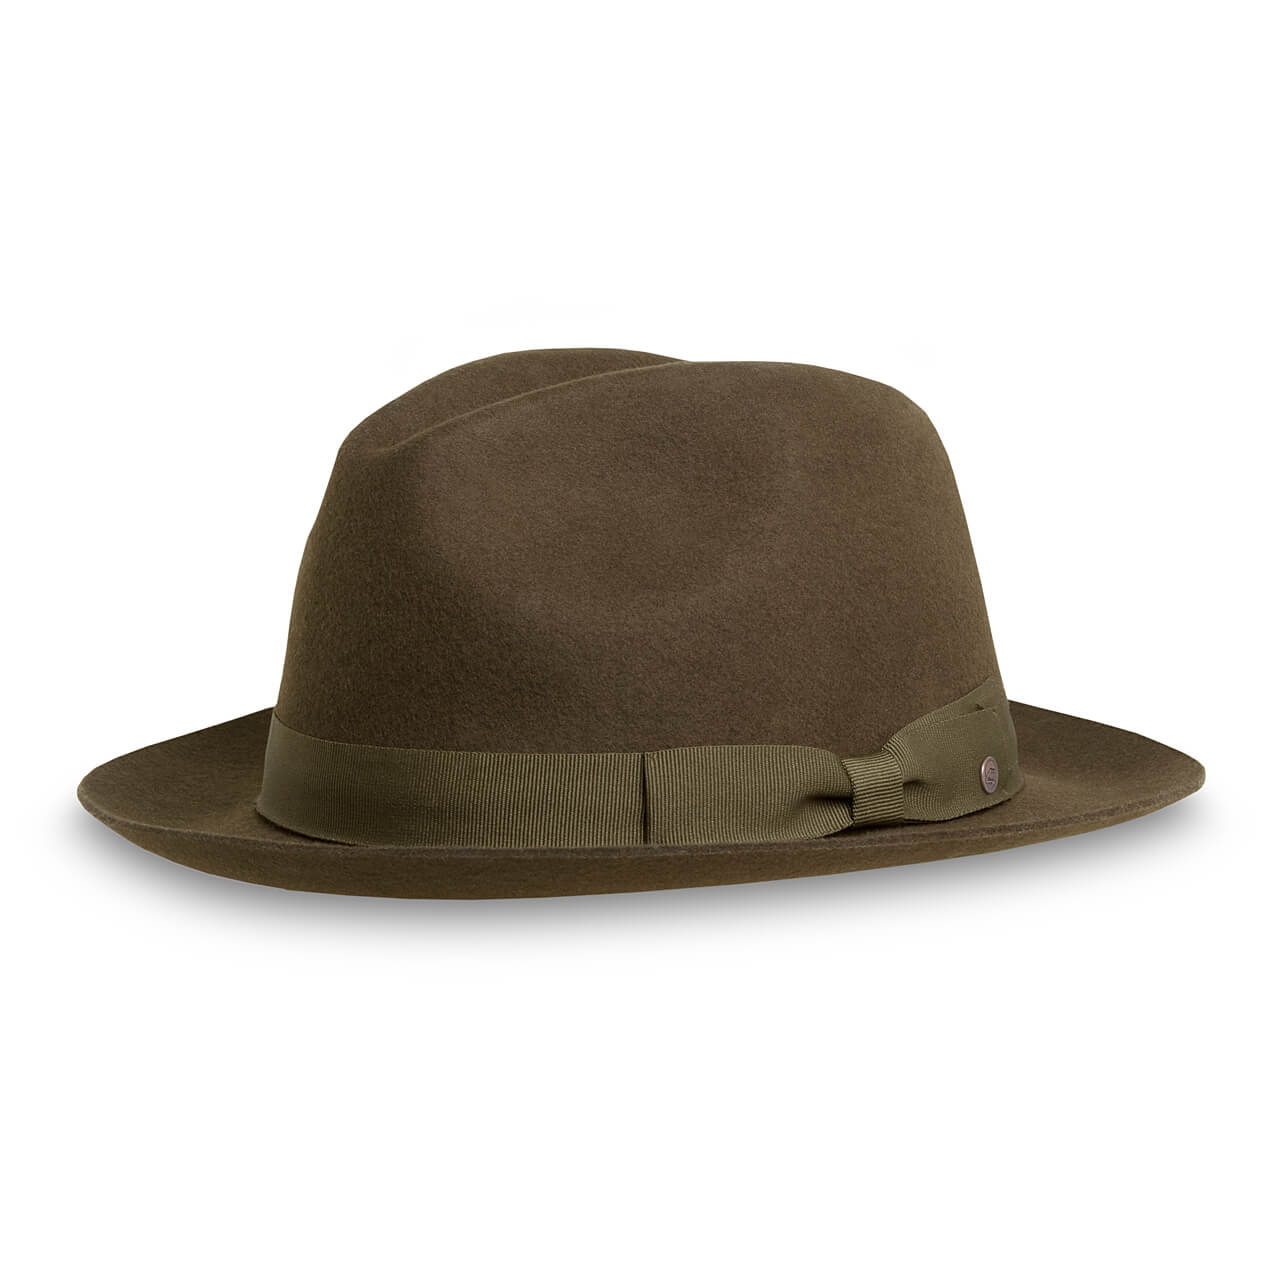 Henschel Hats - Creators and Manufacturers of Fine Headwear in the USA since